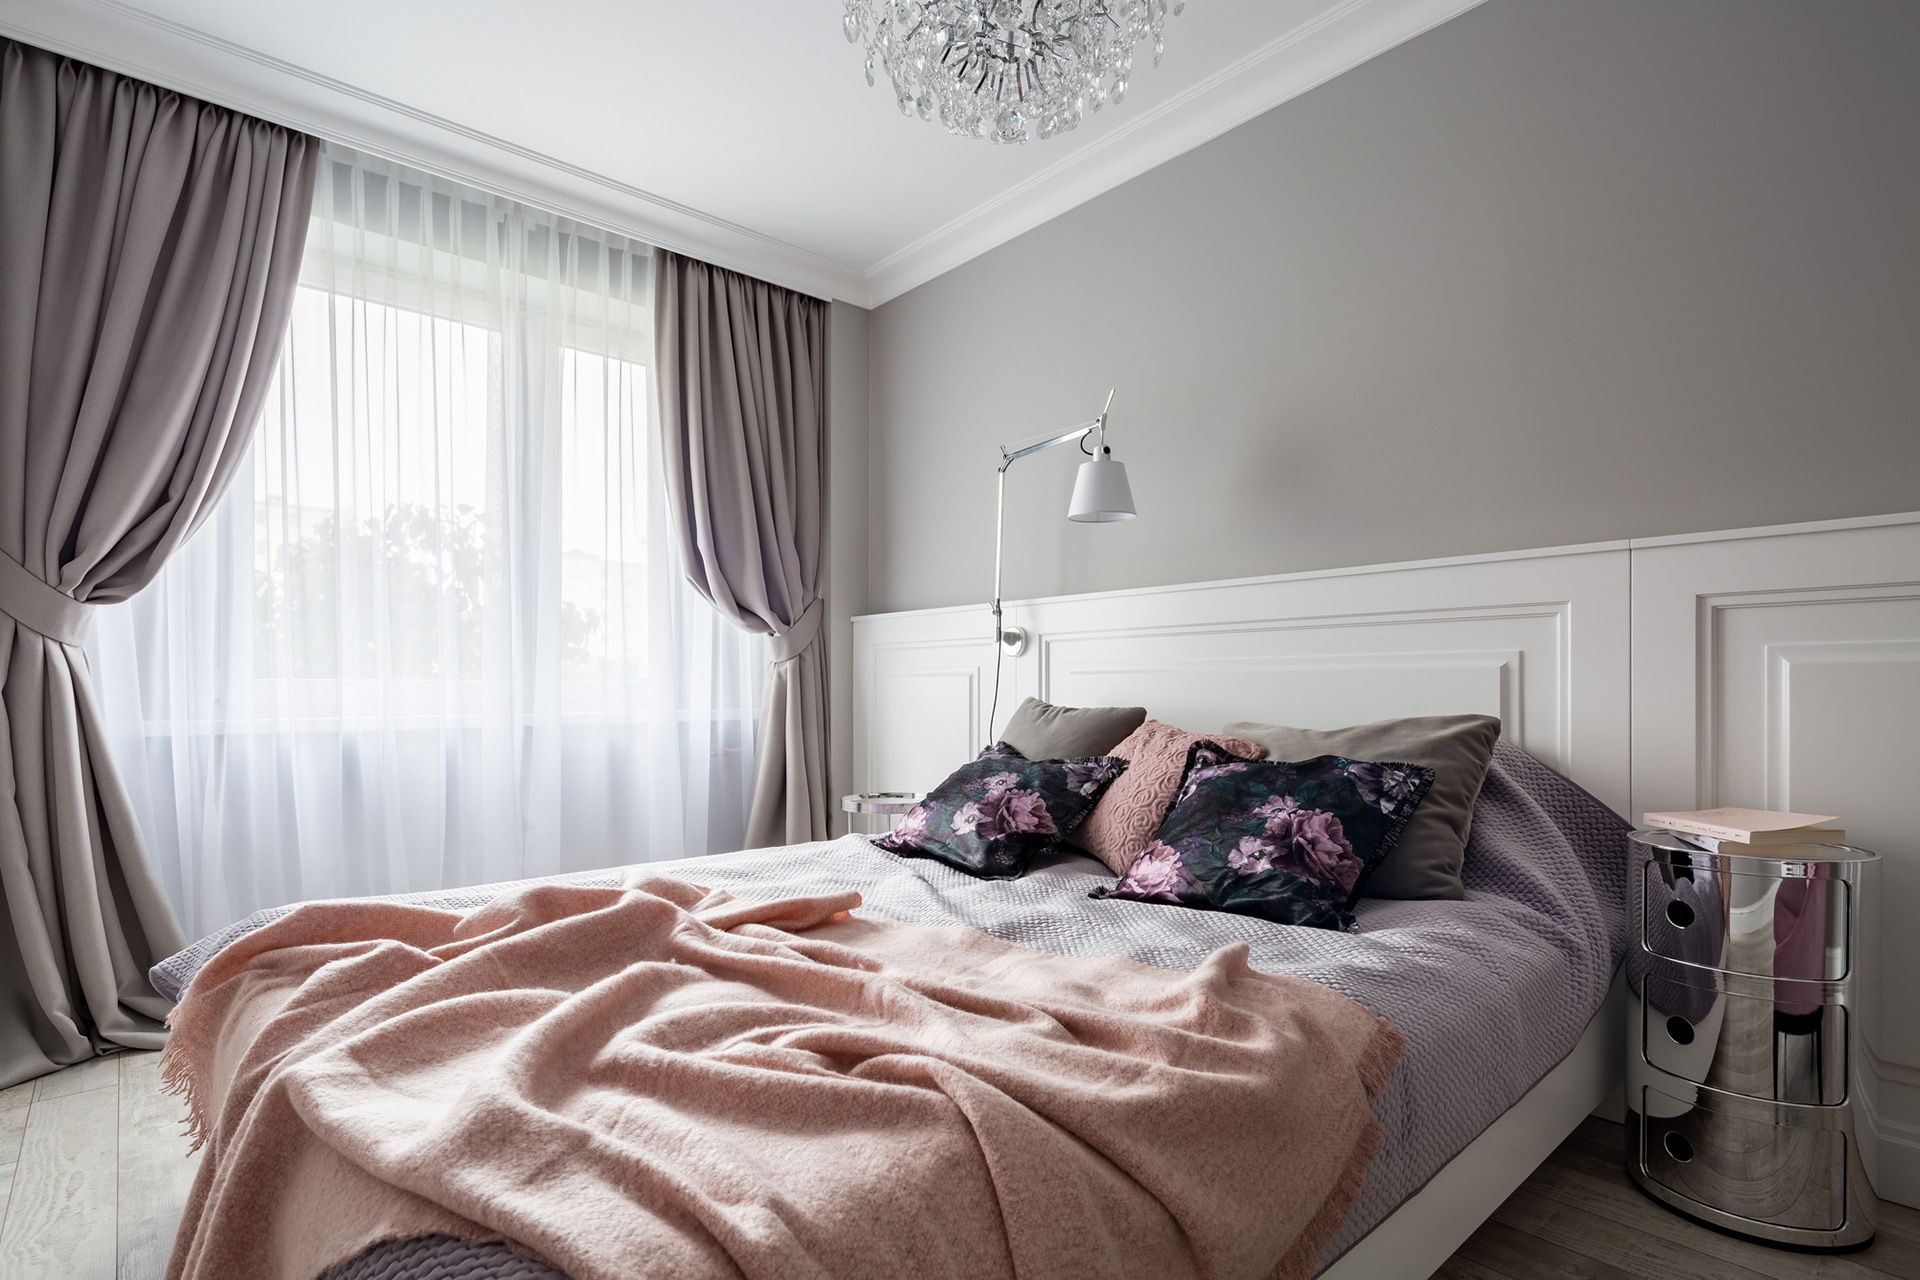 exciting bedroom window curtains | Choose the Perfect Bedroom Curtains for Your Windows ...